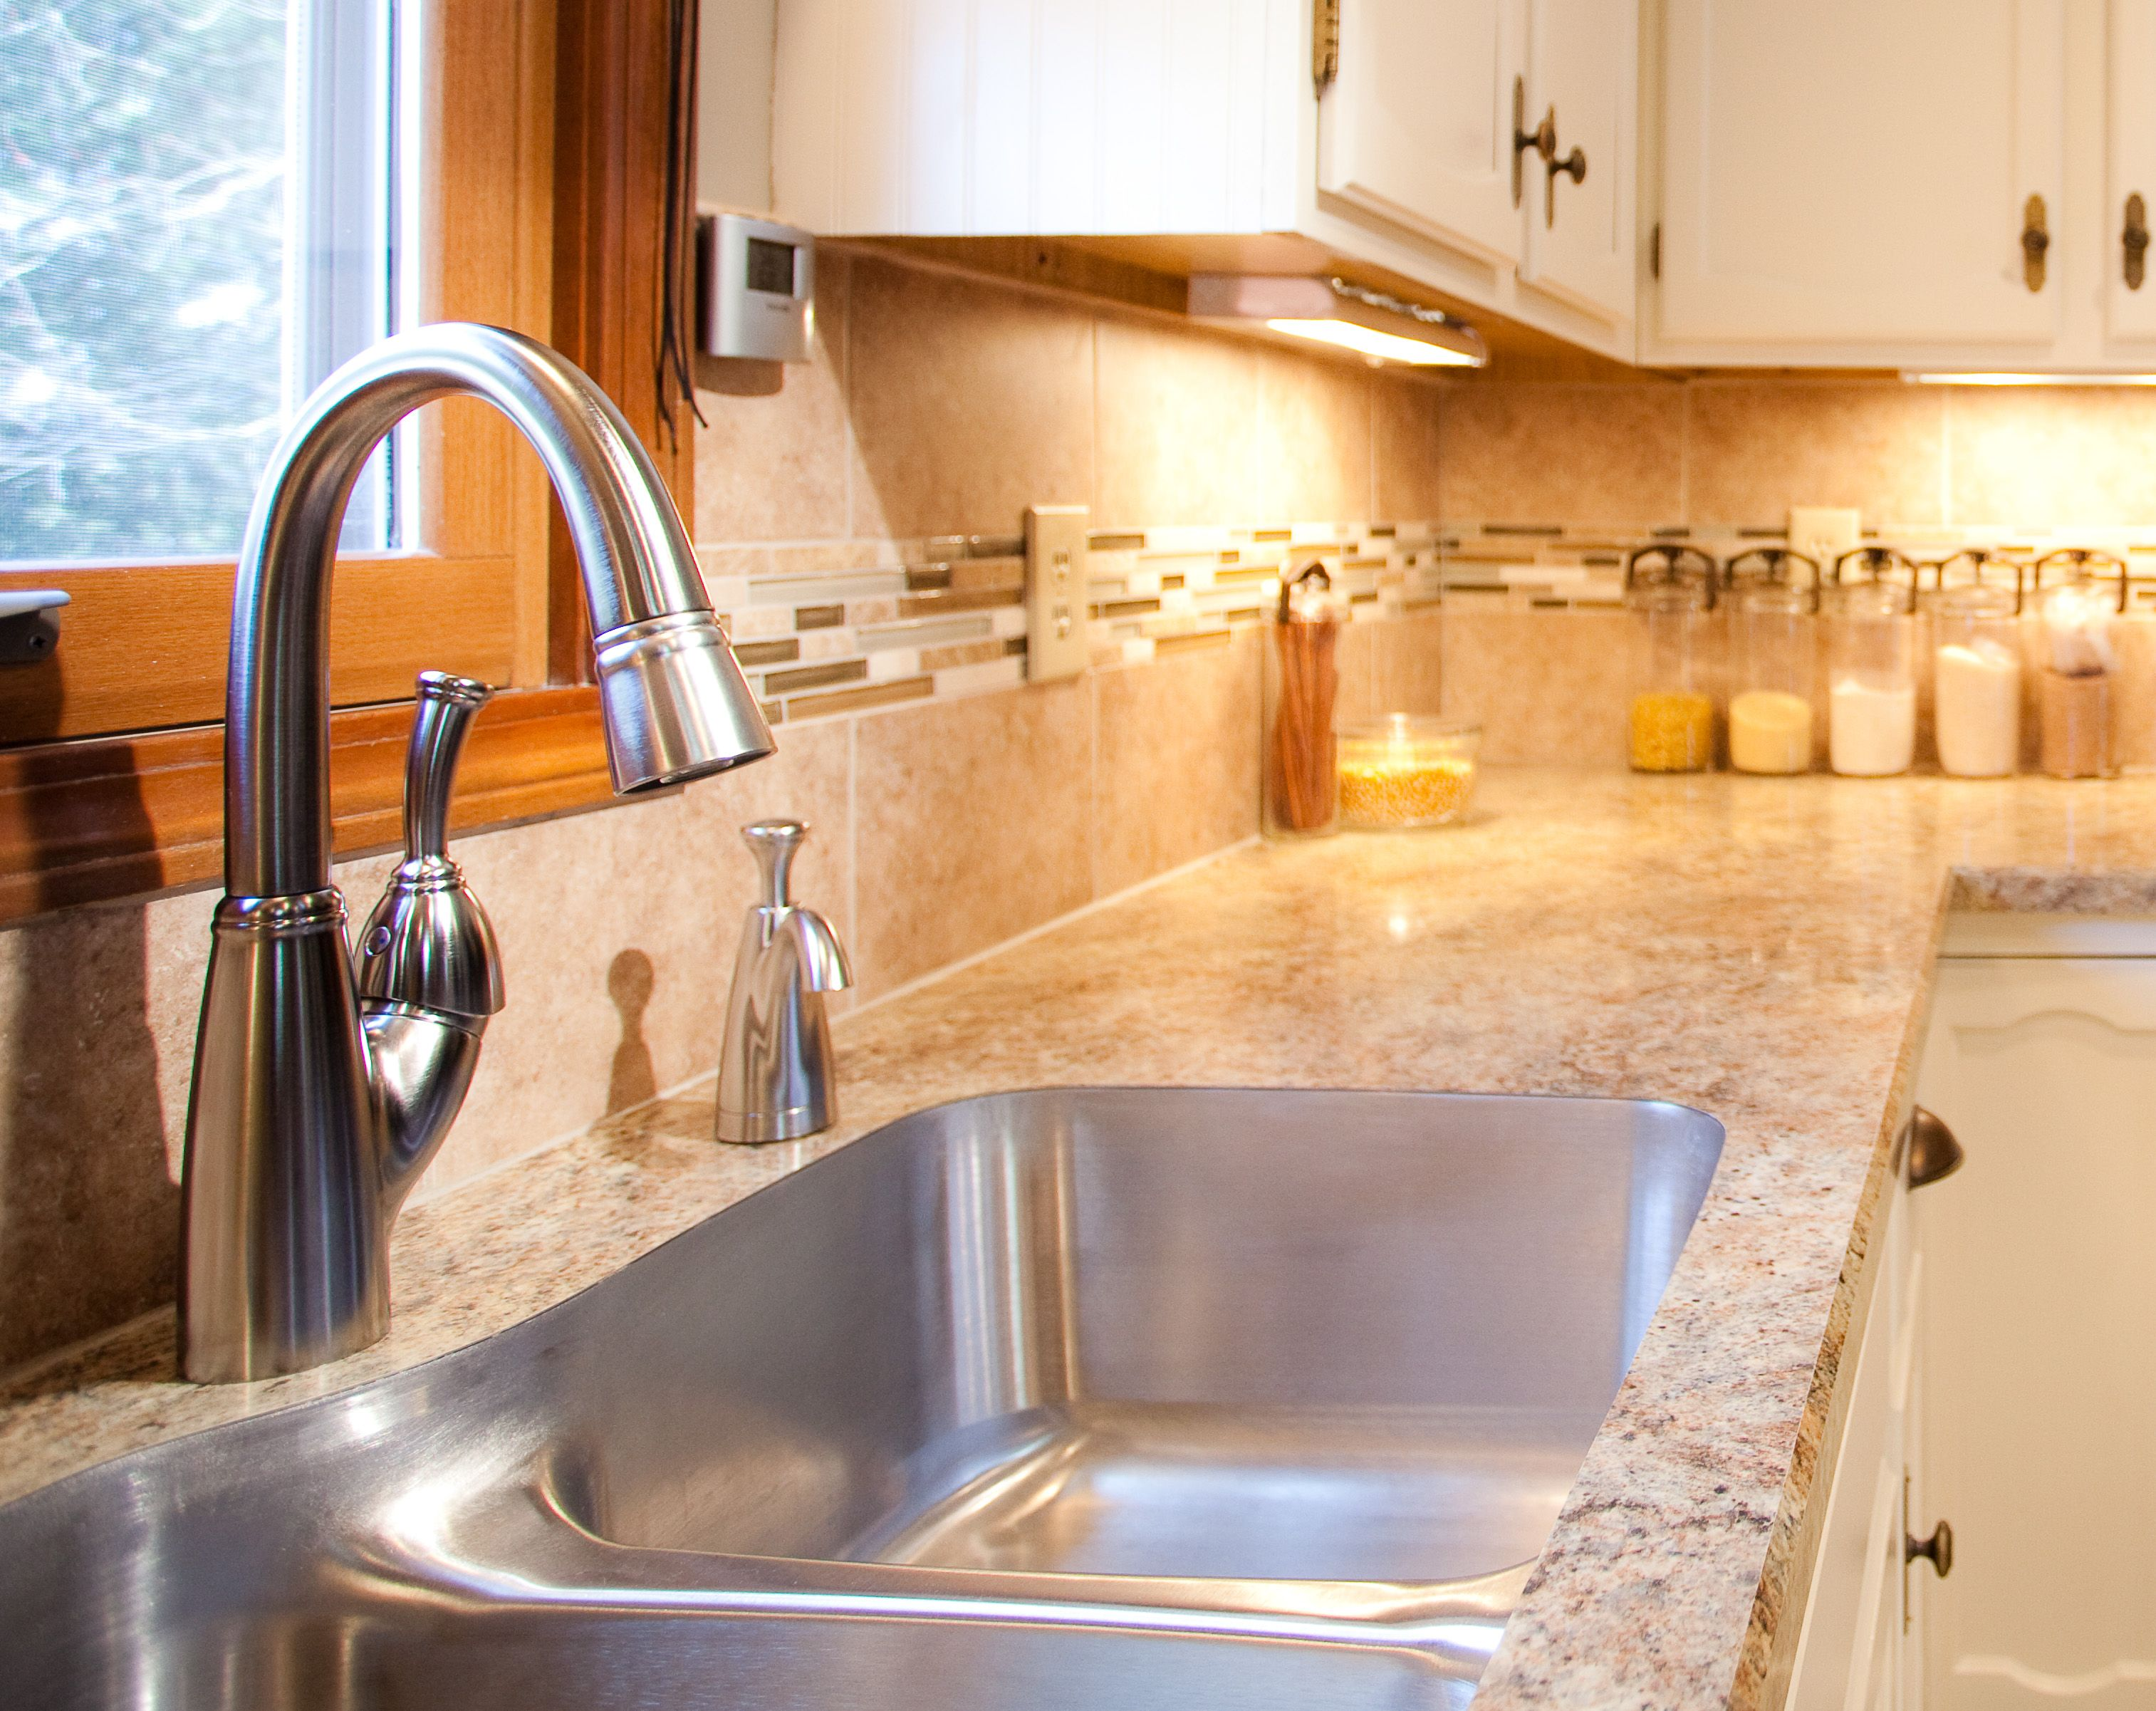 Kitchen Granite Countertops Mn Select granite kitchen countertops for your kitchen from Rock Tops